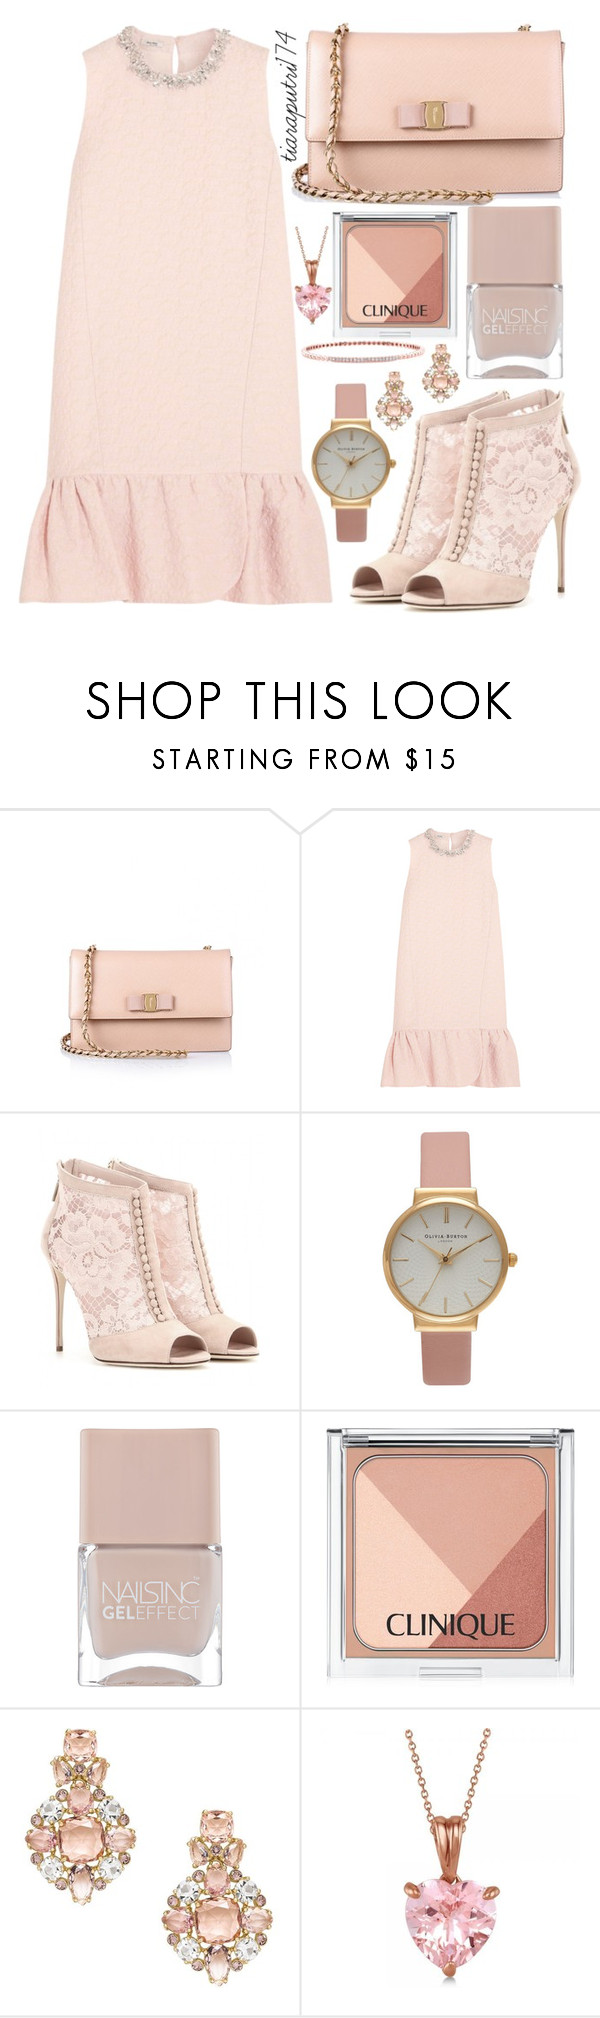 """Untitled #37"" by tiaranrnd ❤ liked on Polyvore featuring Salvatore Ferragamo, Miu Miu, Dolce&Gabbana, Olivia Burton, Nails Inc., Clinique, Kate Spade and Allurez"